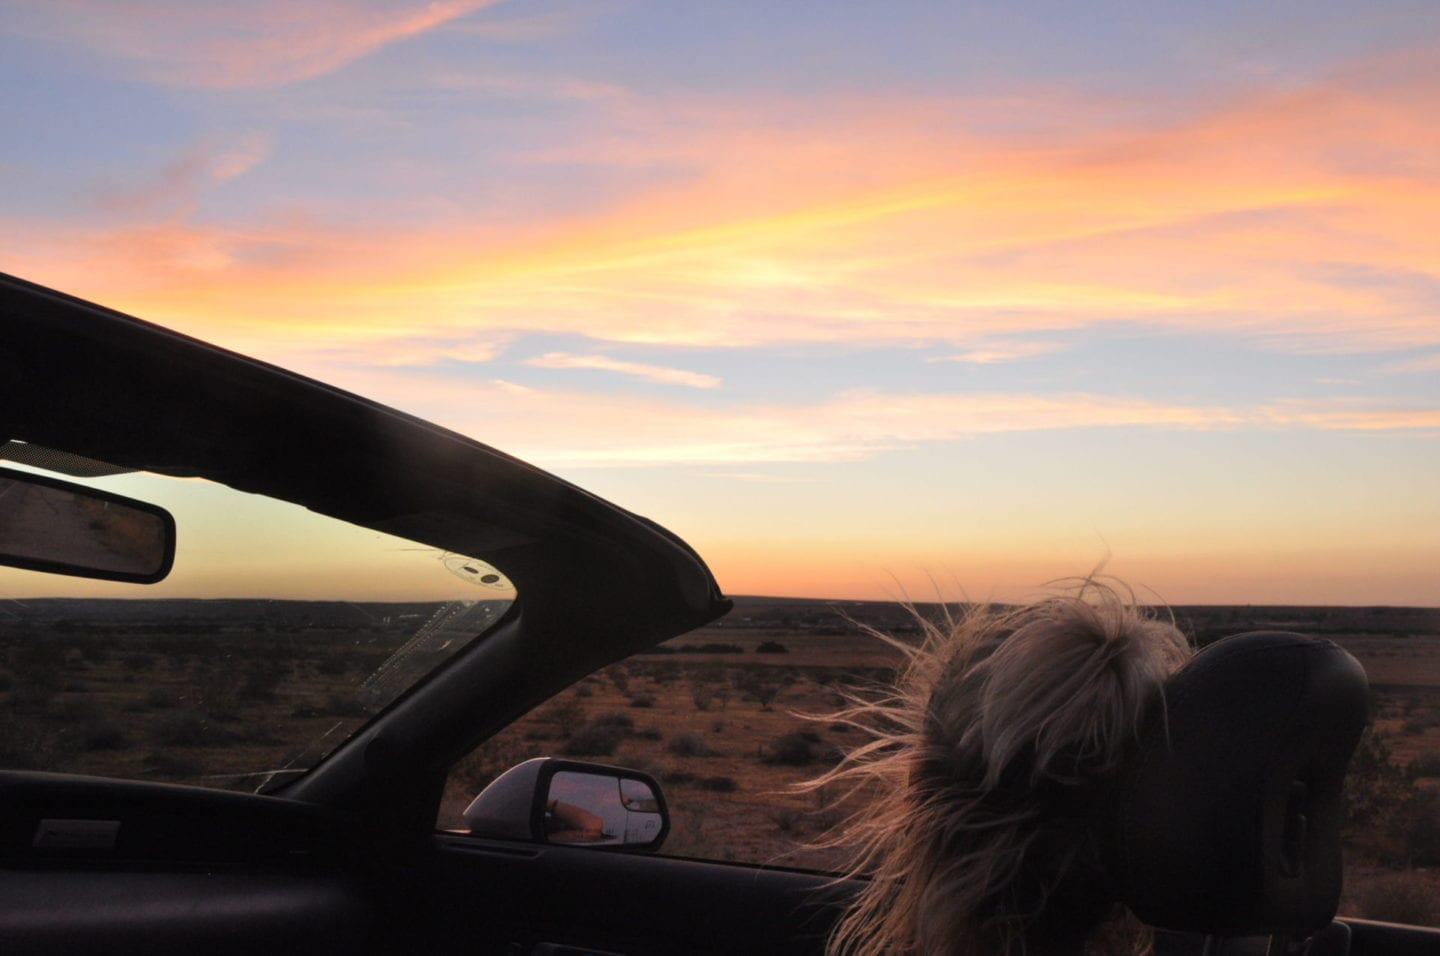 Sunset on Route 66 Road Trip